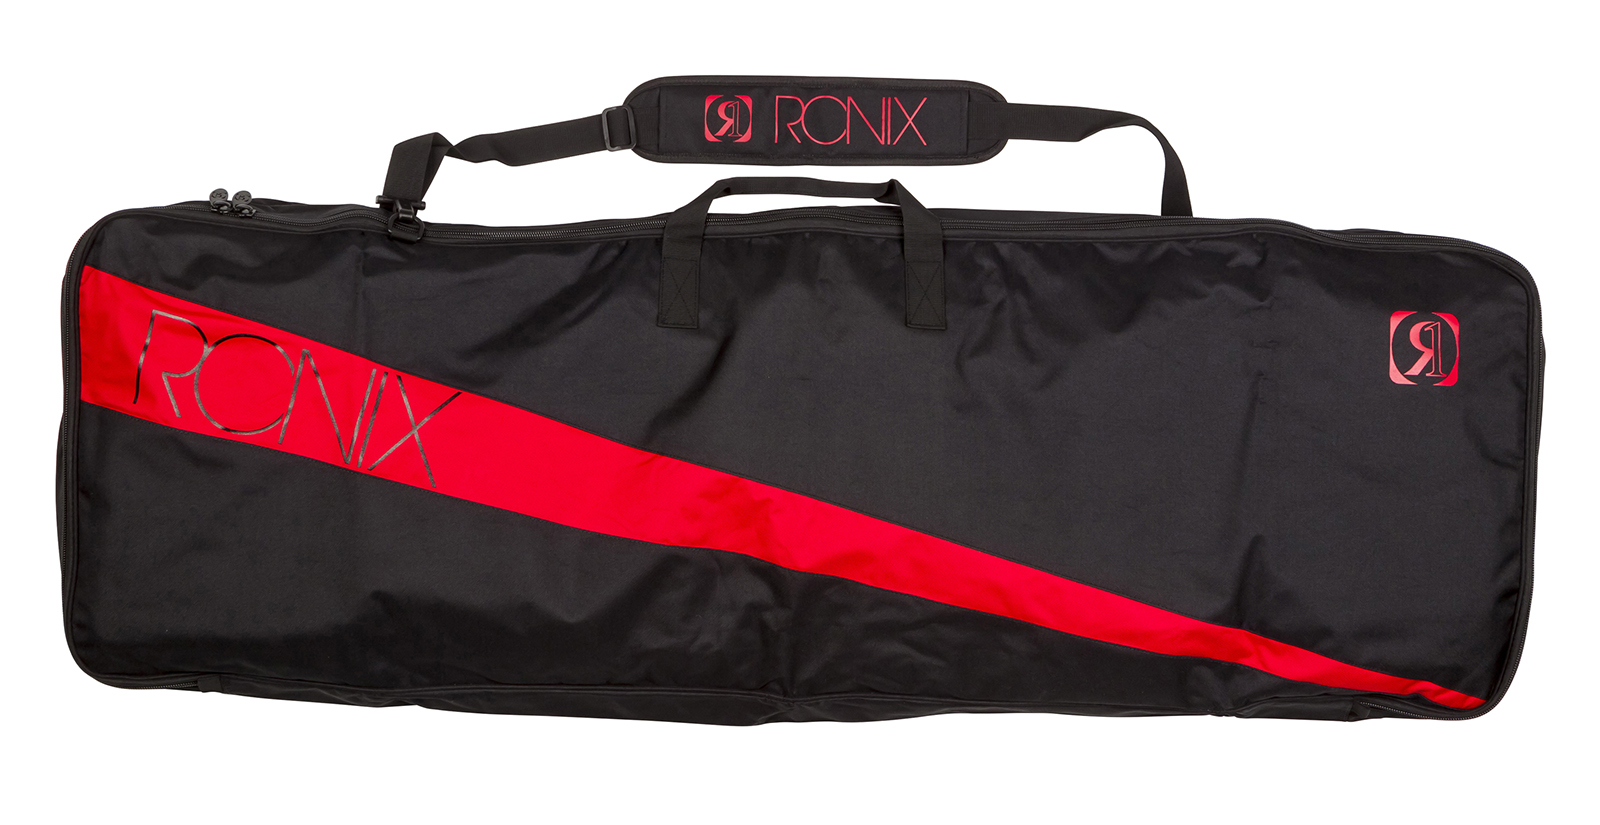 COLLATERAL NON PADDED BOARD BAG RONIX 2017